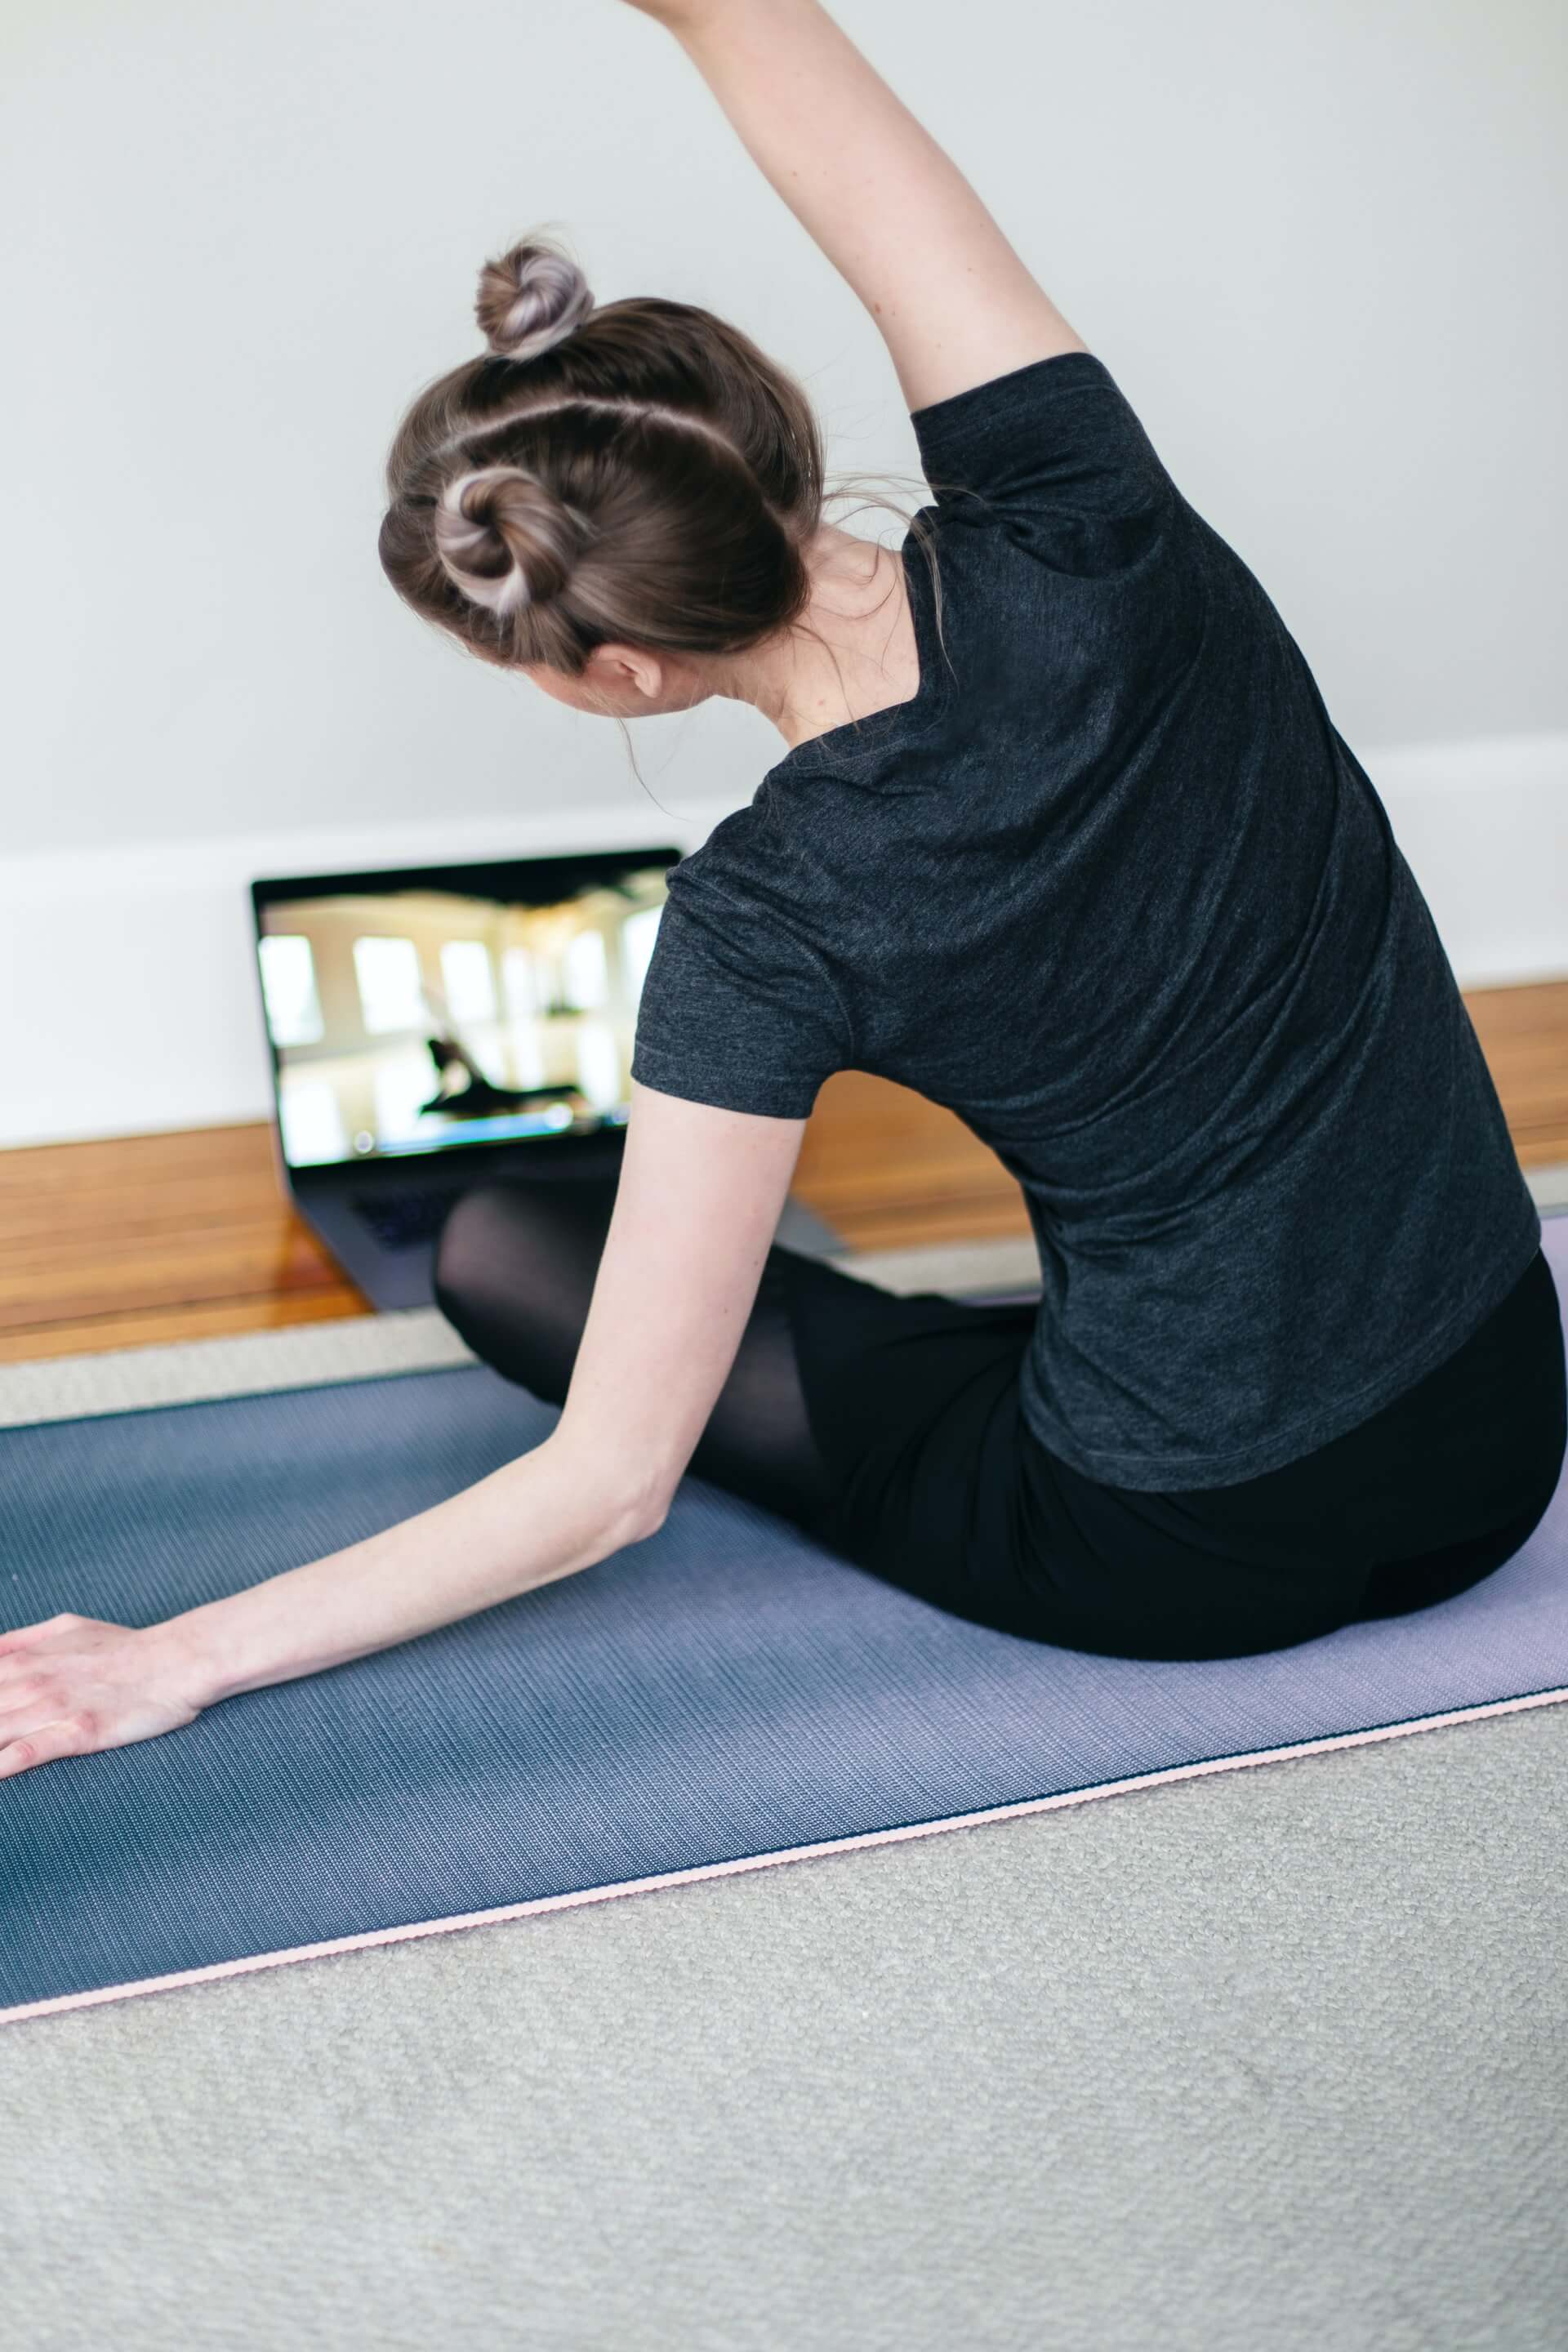 Person attending a yoga session on their laptop